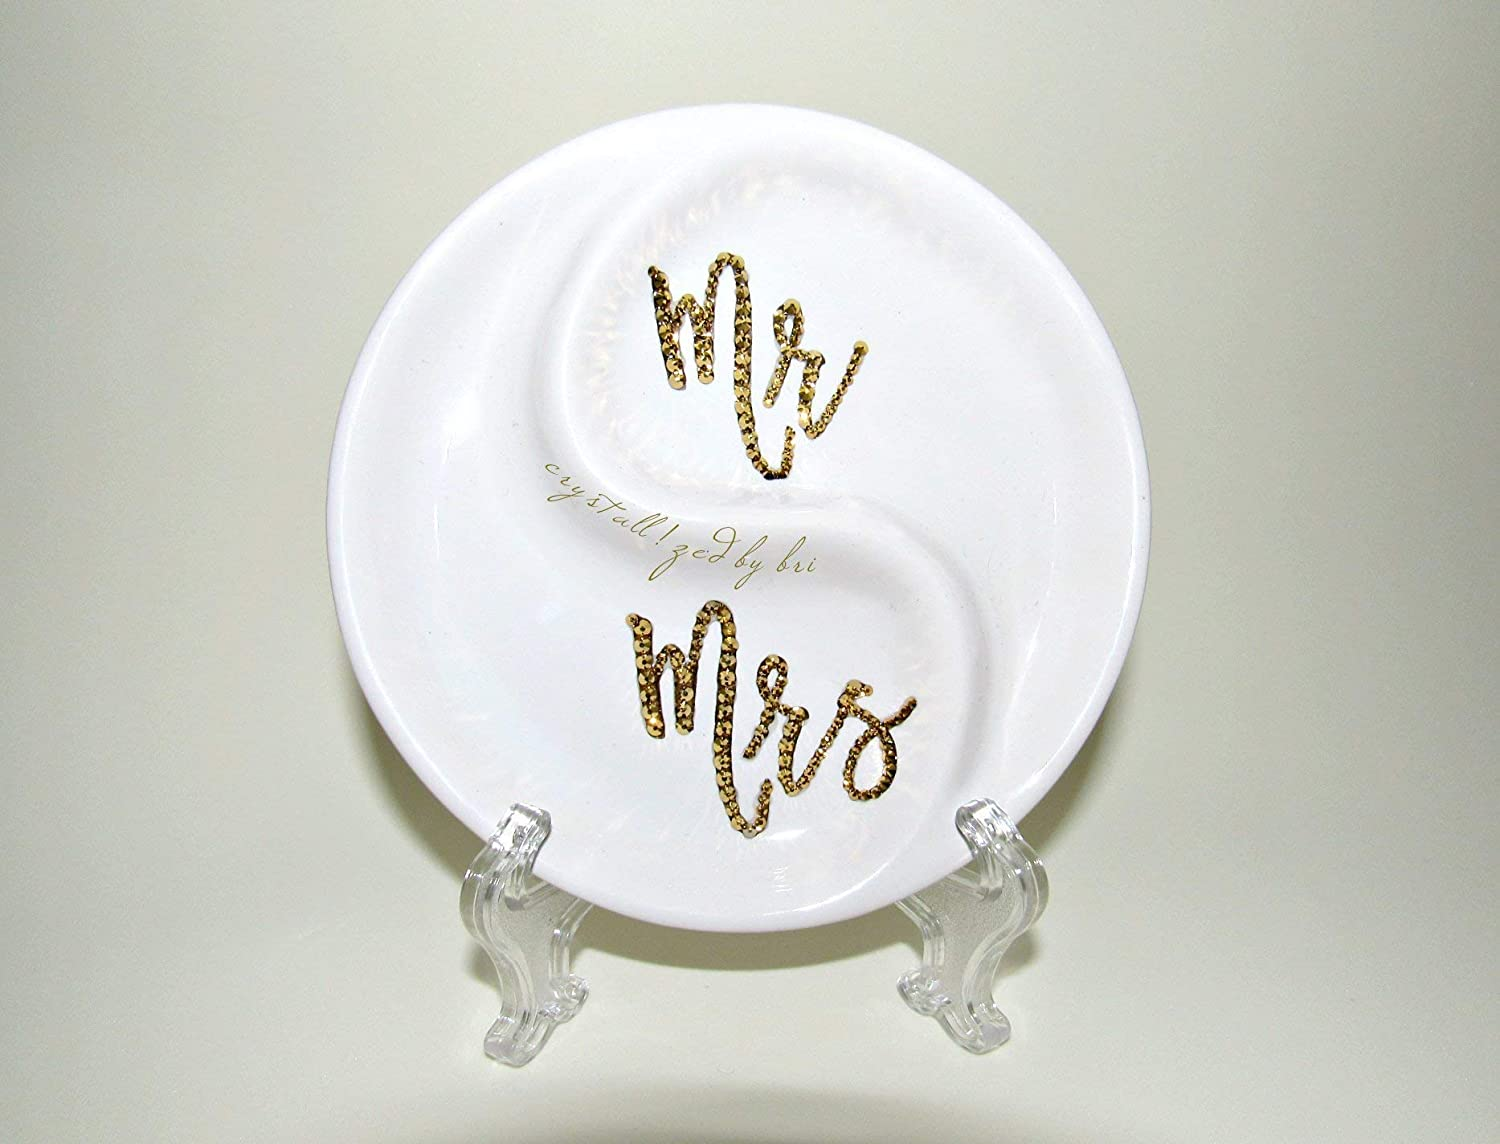 Swarovski CRYSTALLIZED Mr. Mrs. Ring Dish Gold White Bling Crystals Wedding